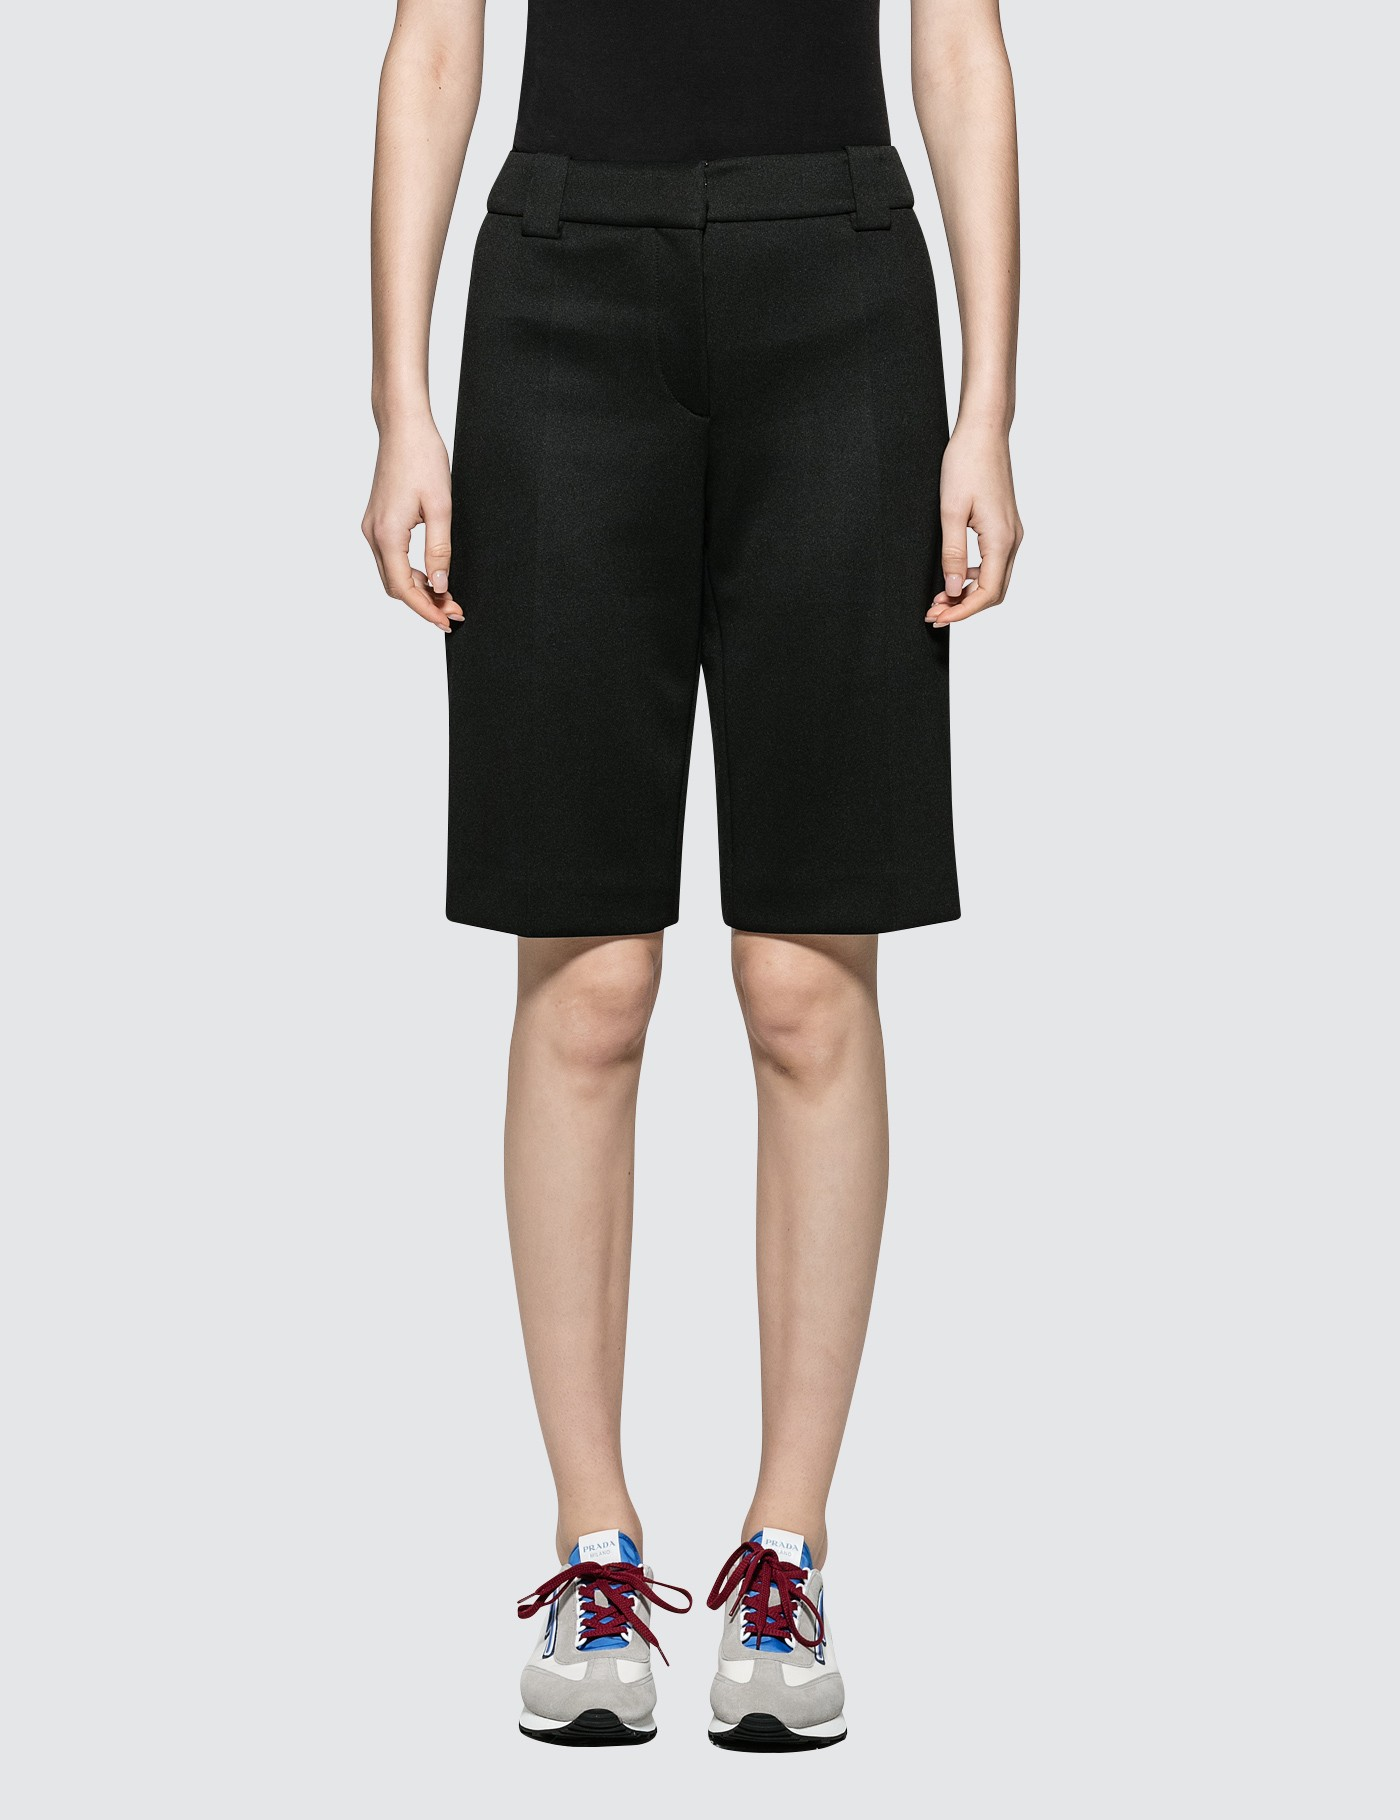 bdd8fef4f5 Buy Original Prada Tecno Jersey Shorts at Indonesia | BOBOBOBO